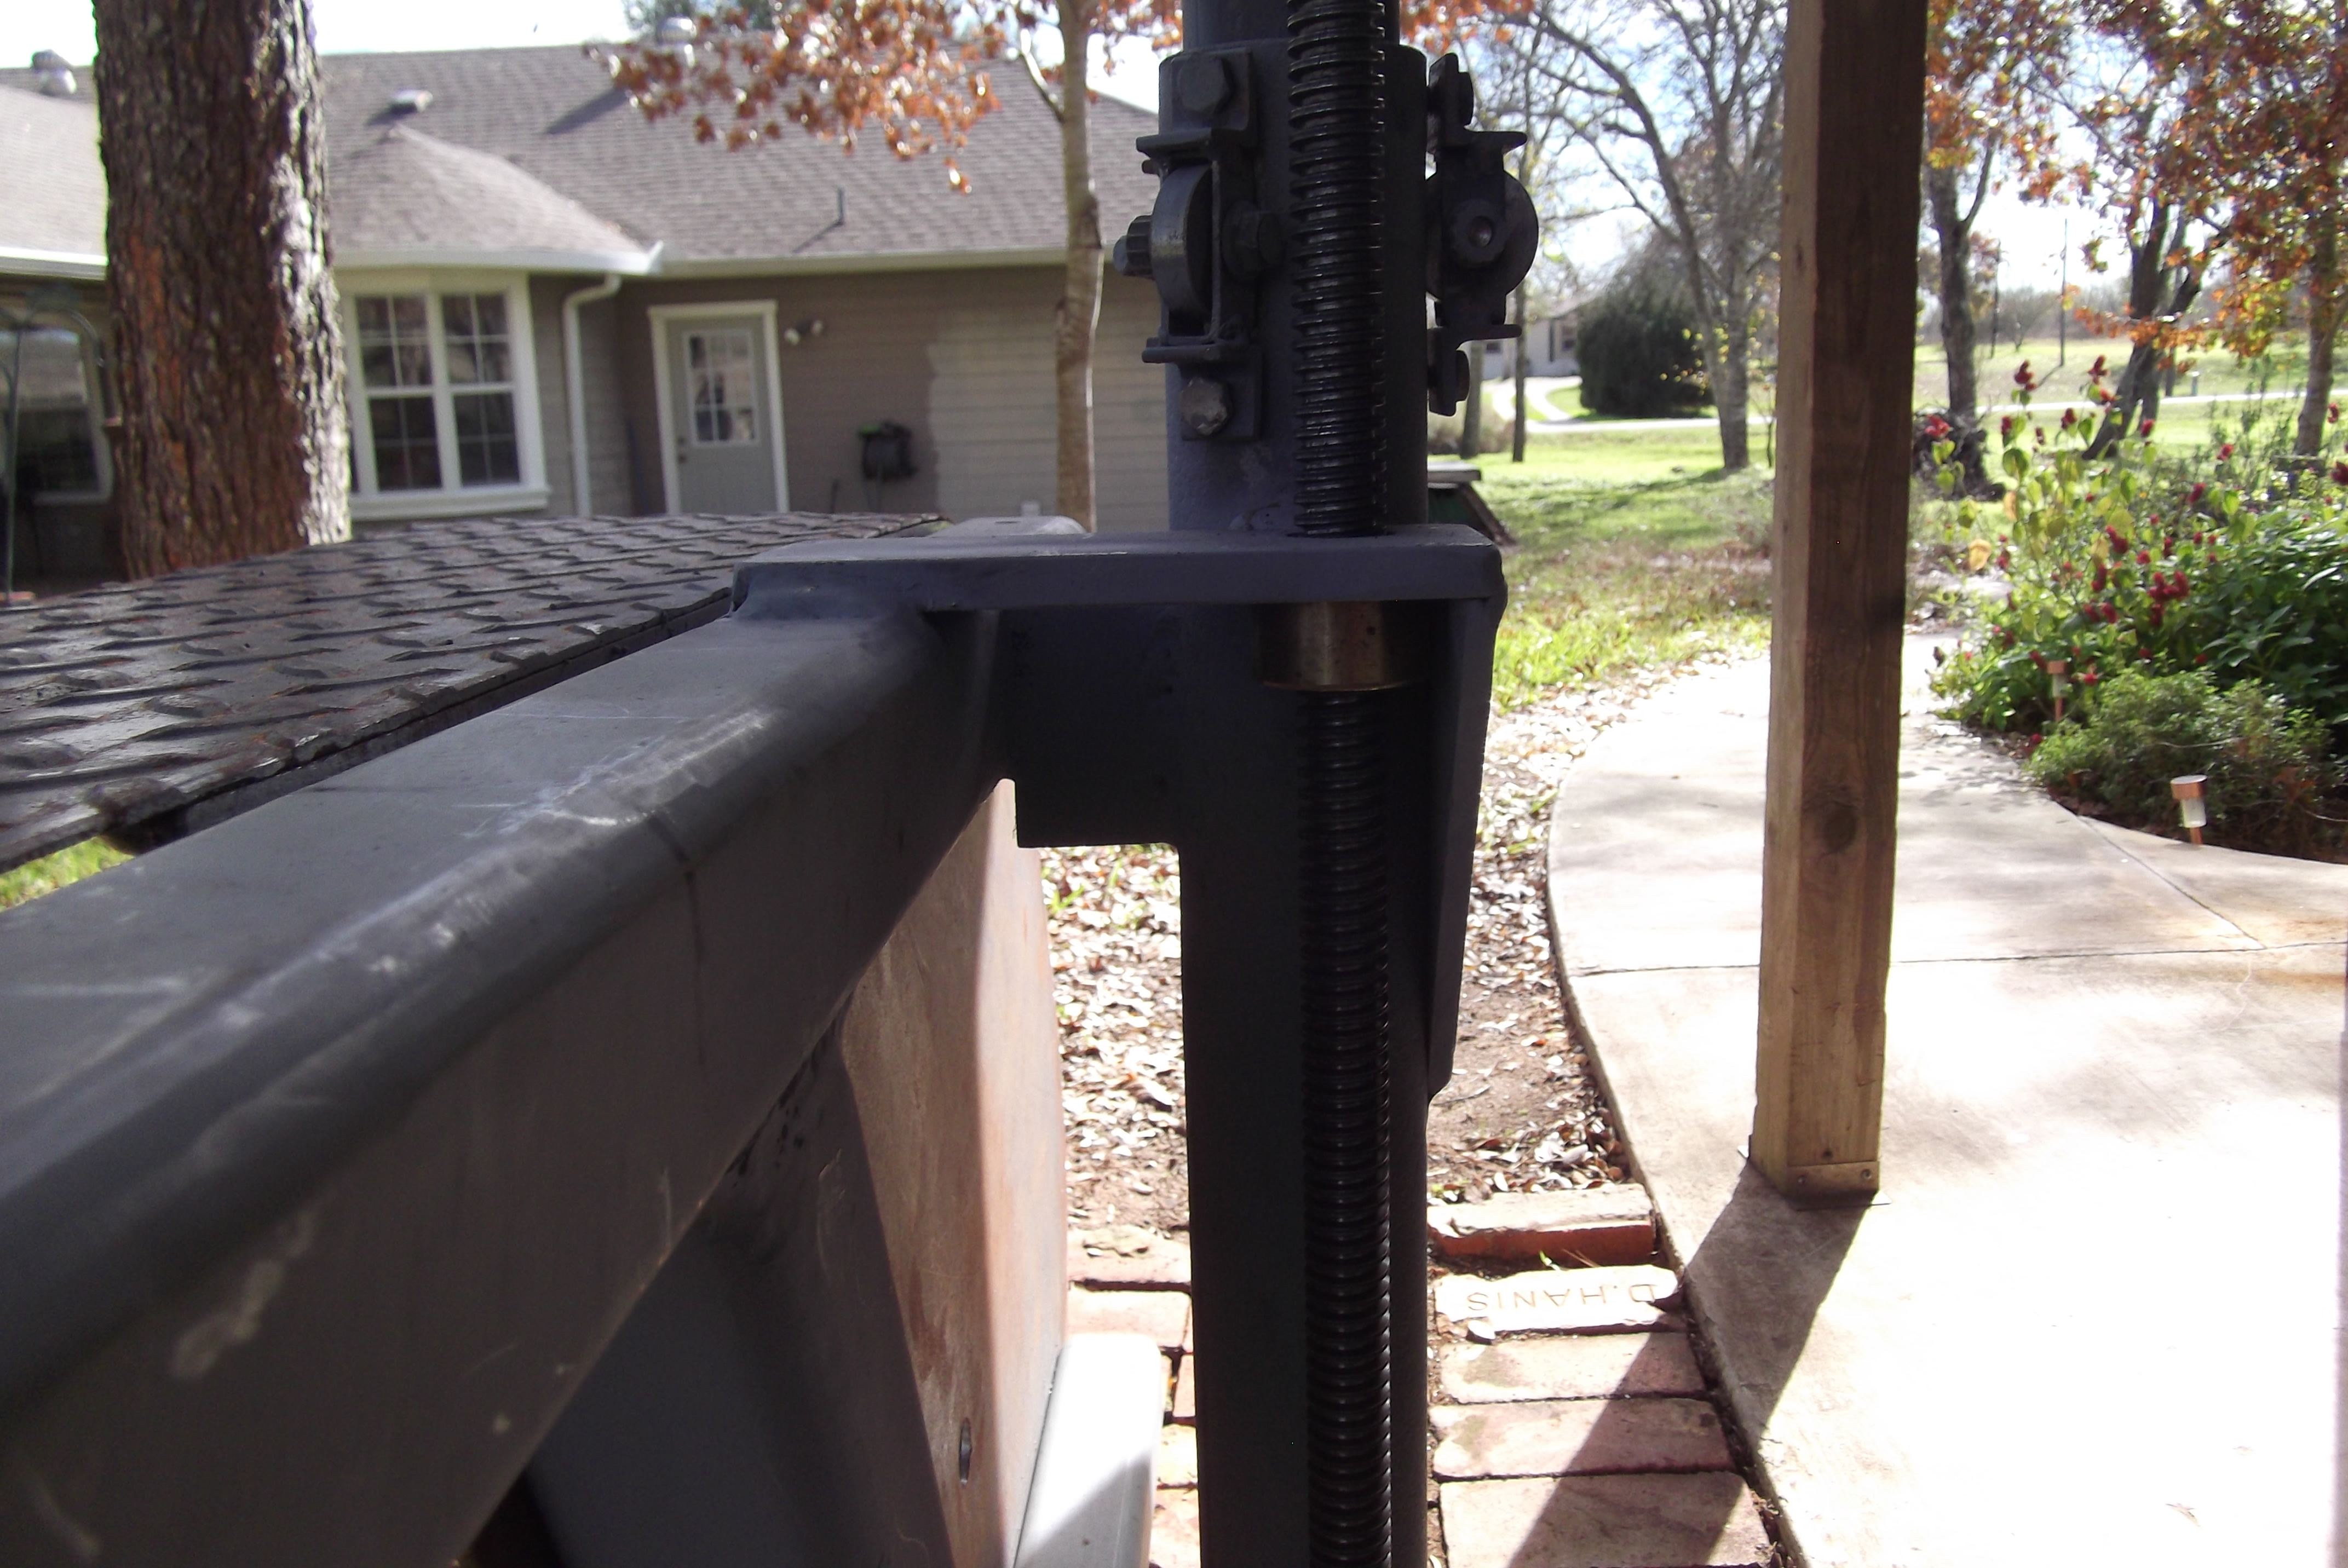 Picture of Leadscrew Setup